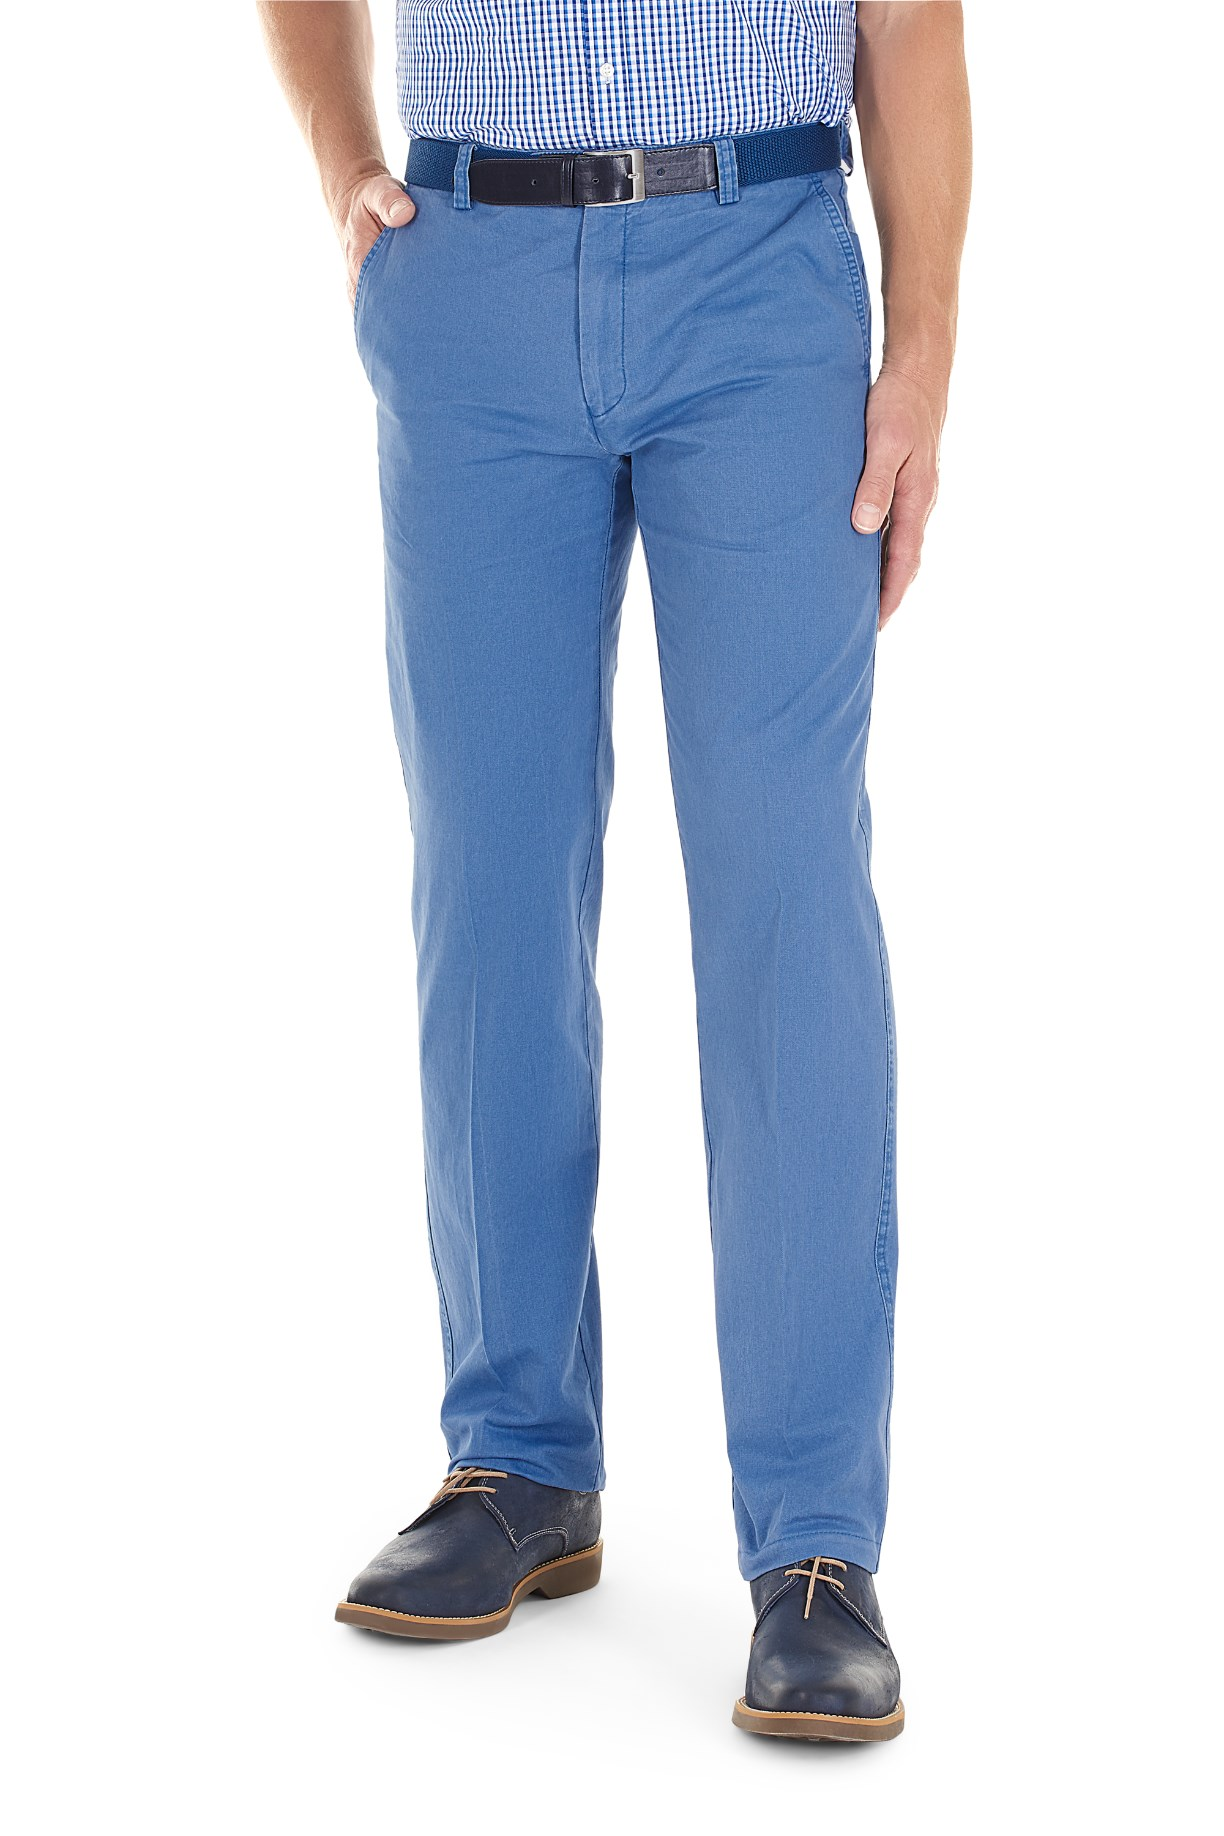 Gurteen Longford trousers in light blue